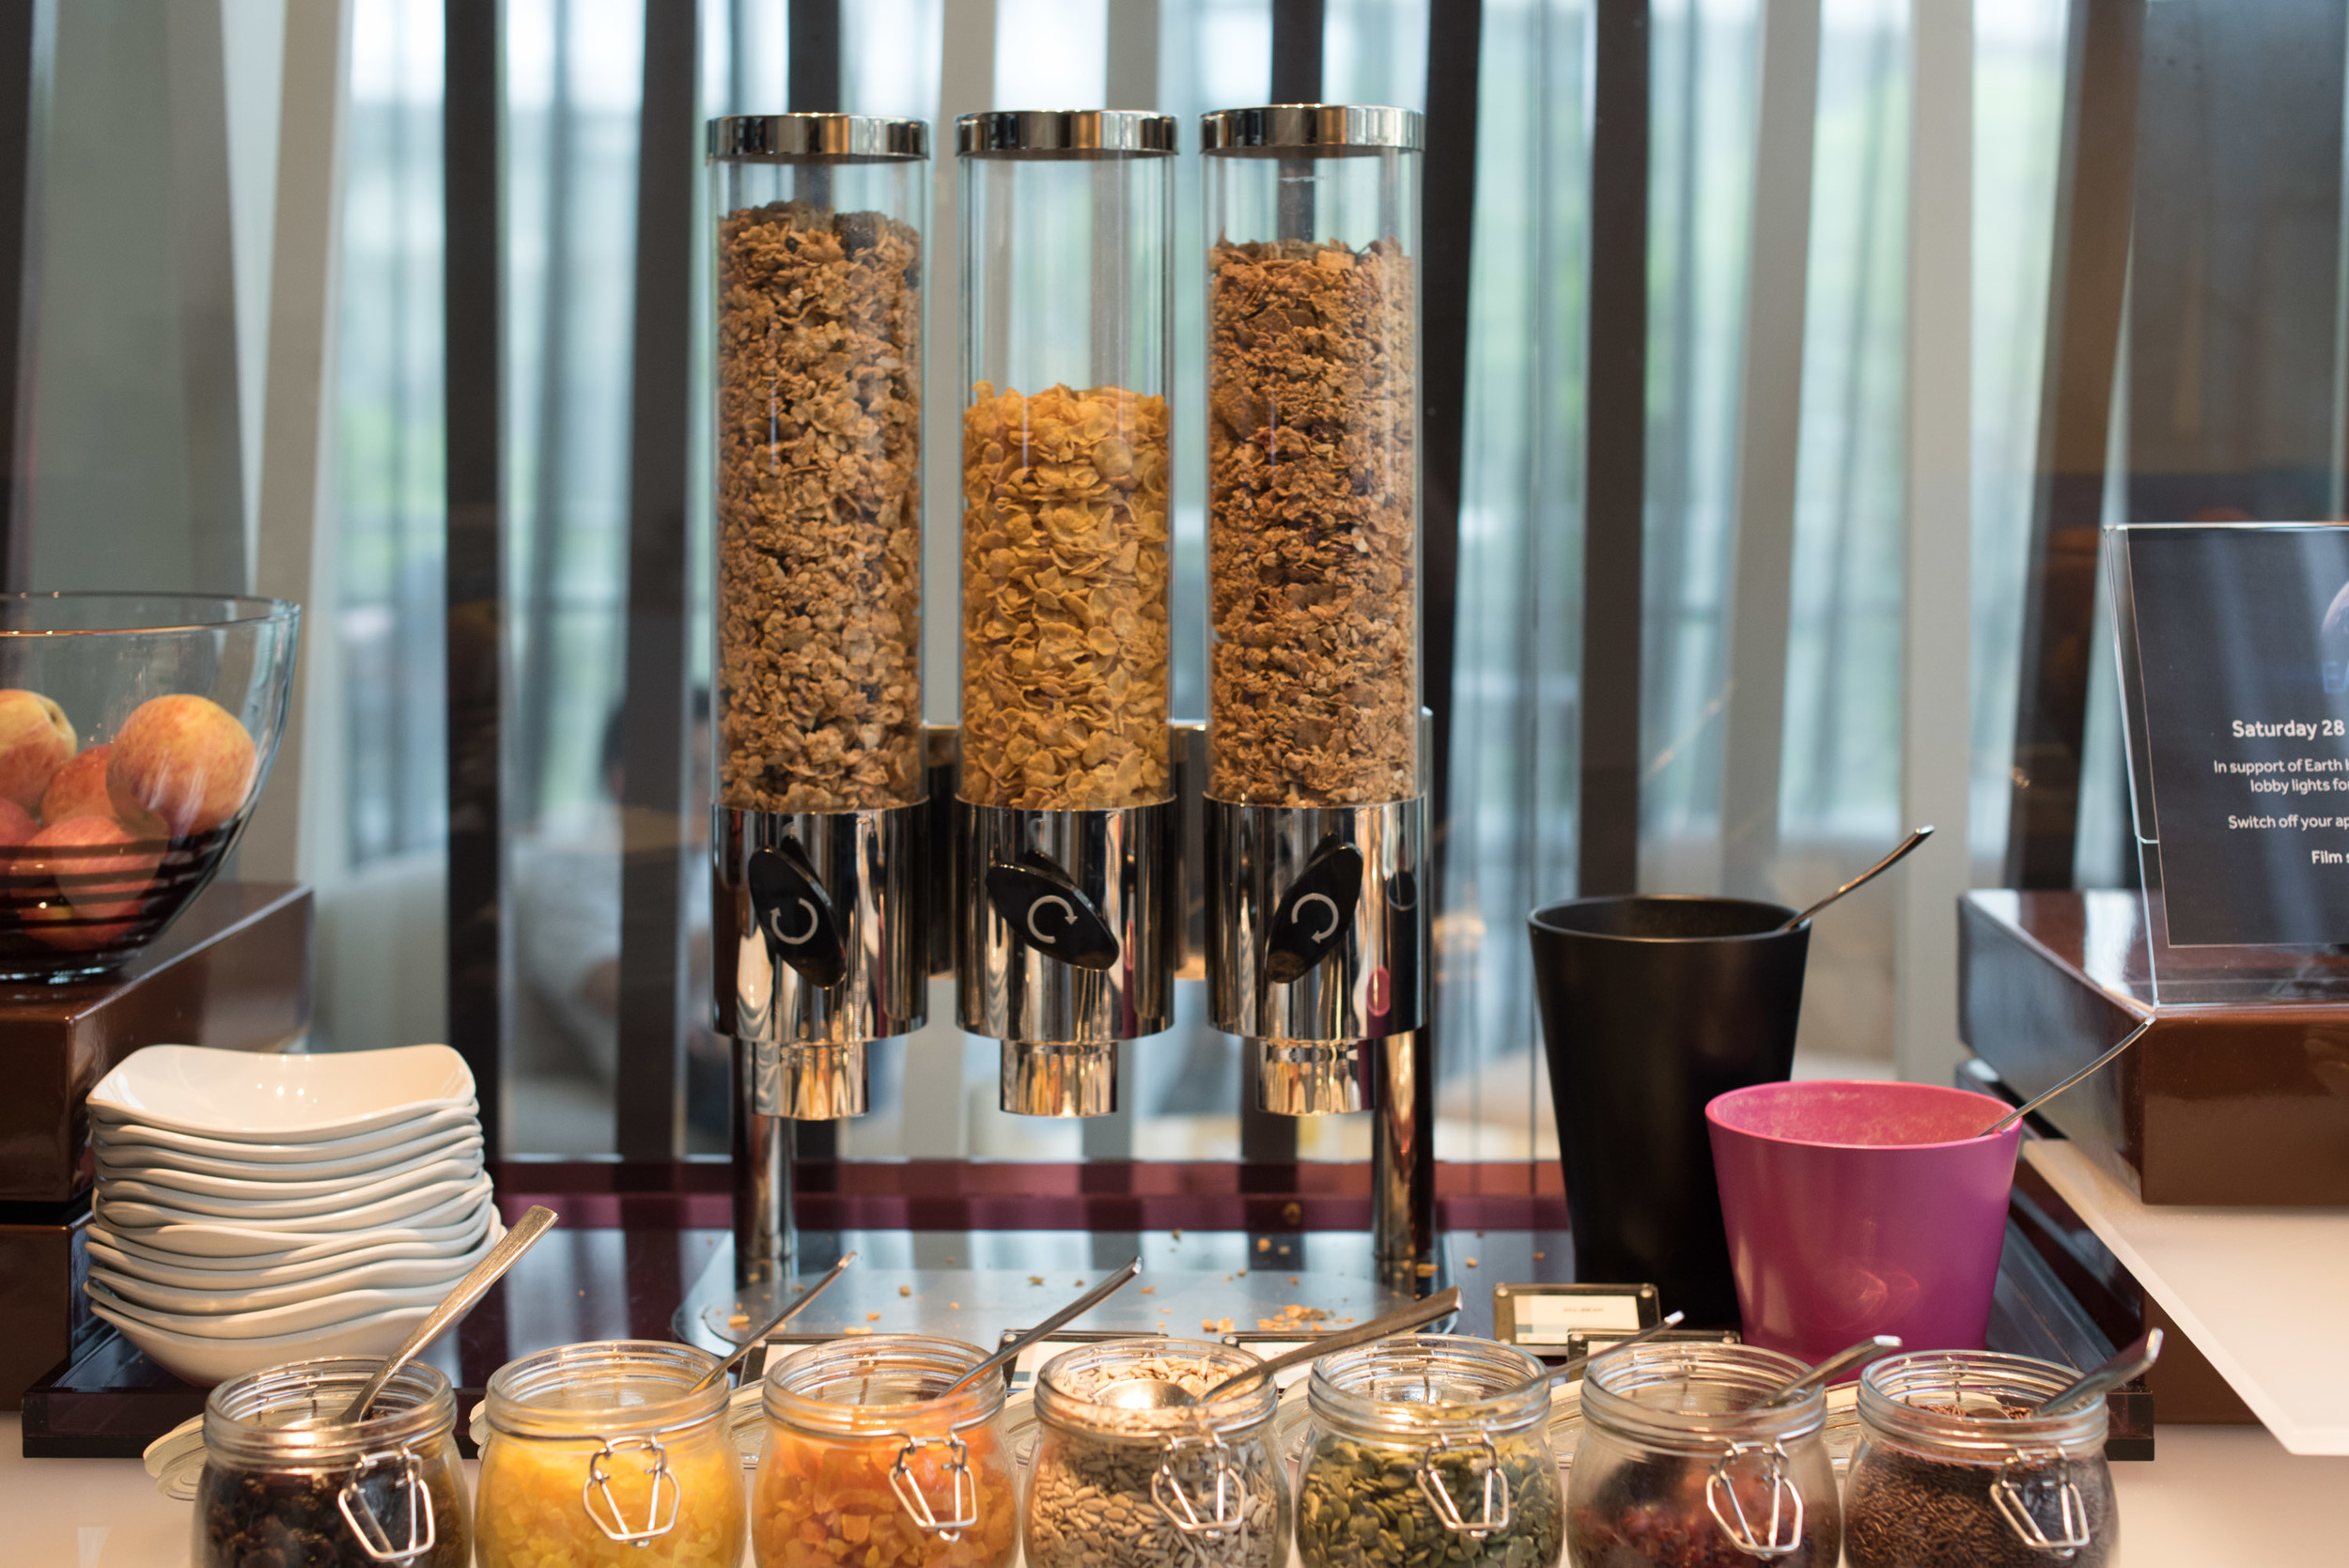 Breakfast Cereal at the Pacific Lounge